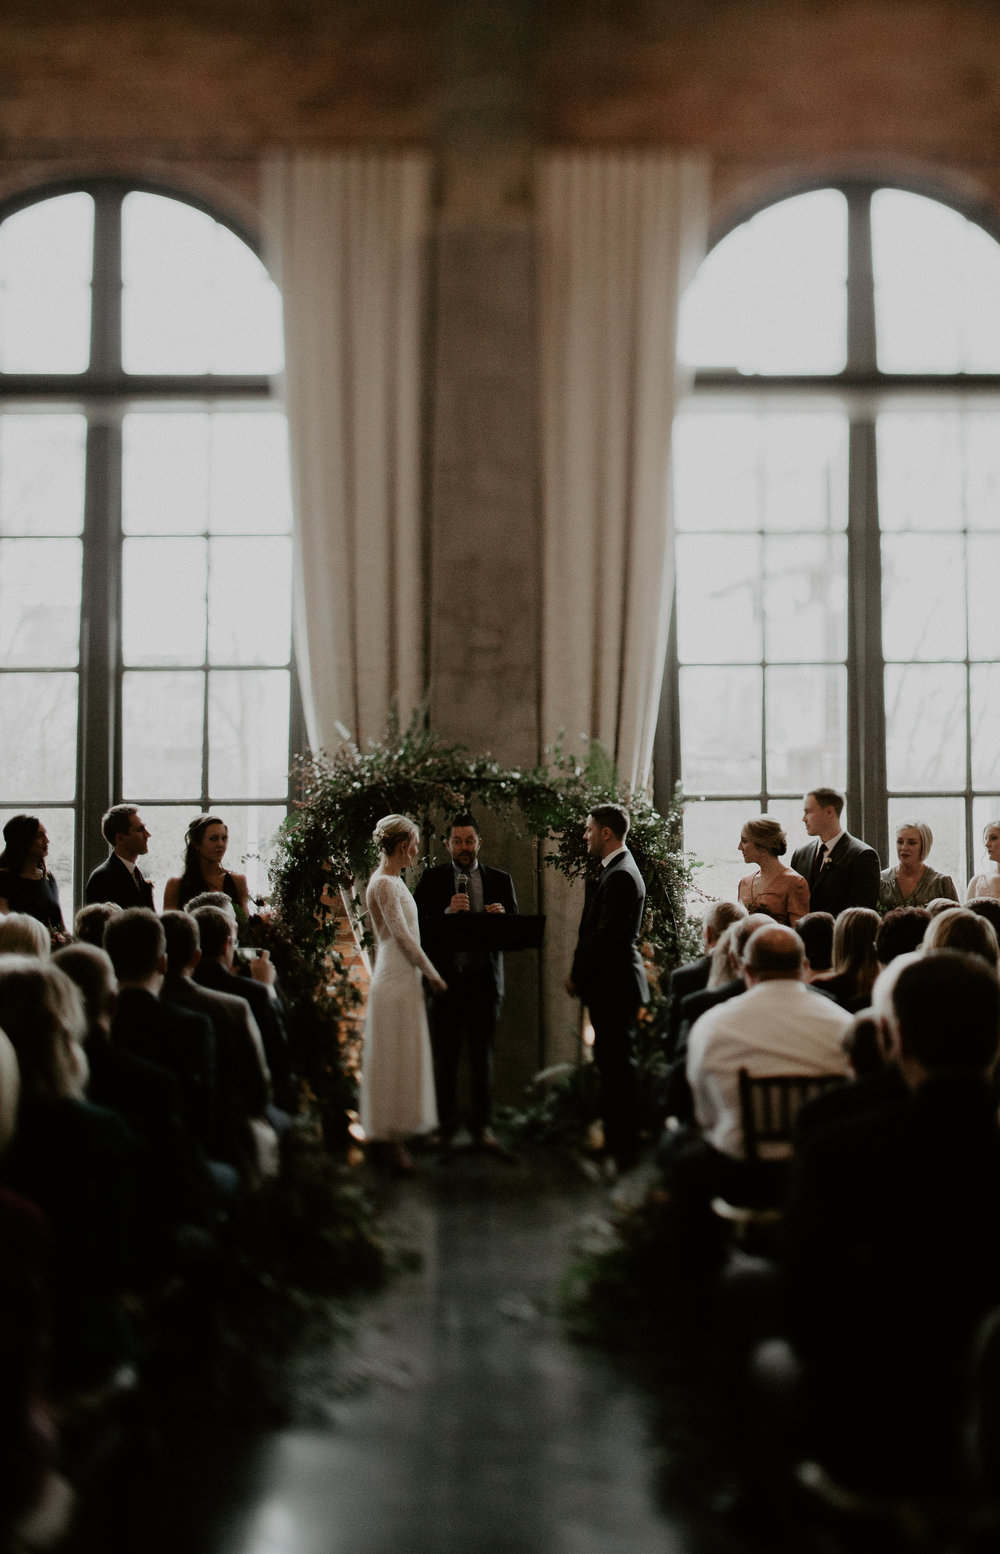 The_Steam_Plant_Dayton_Wedding-EDIT-297.jpg